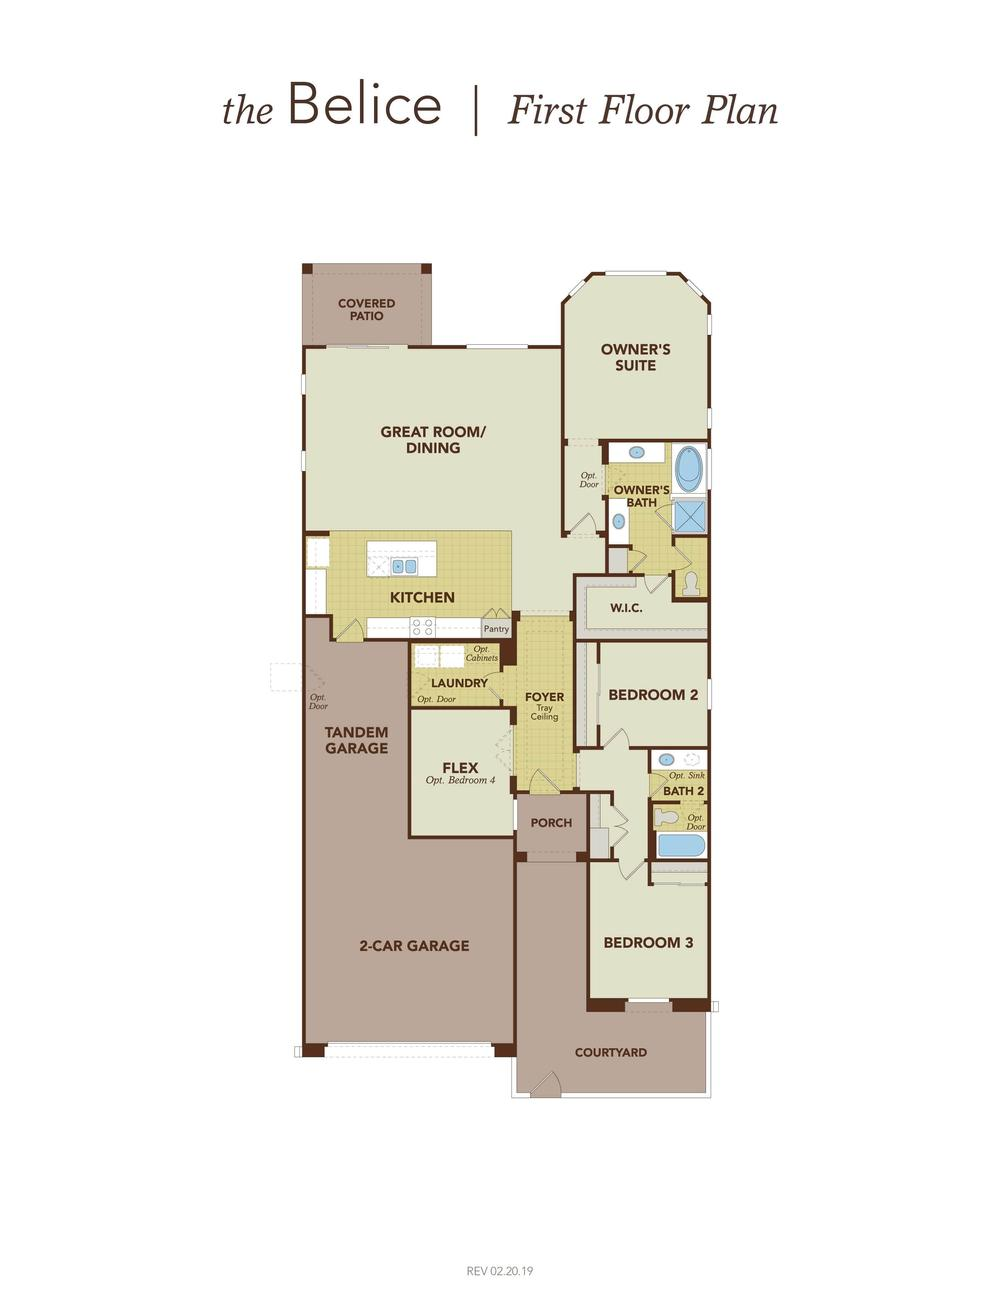 Belice First Floor Plan